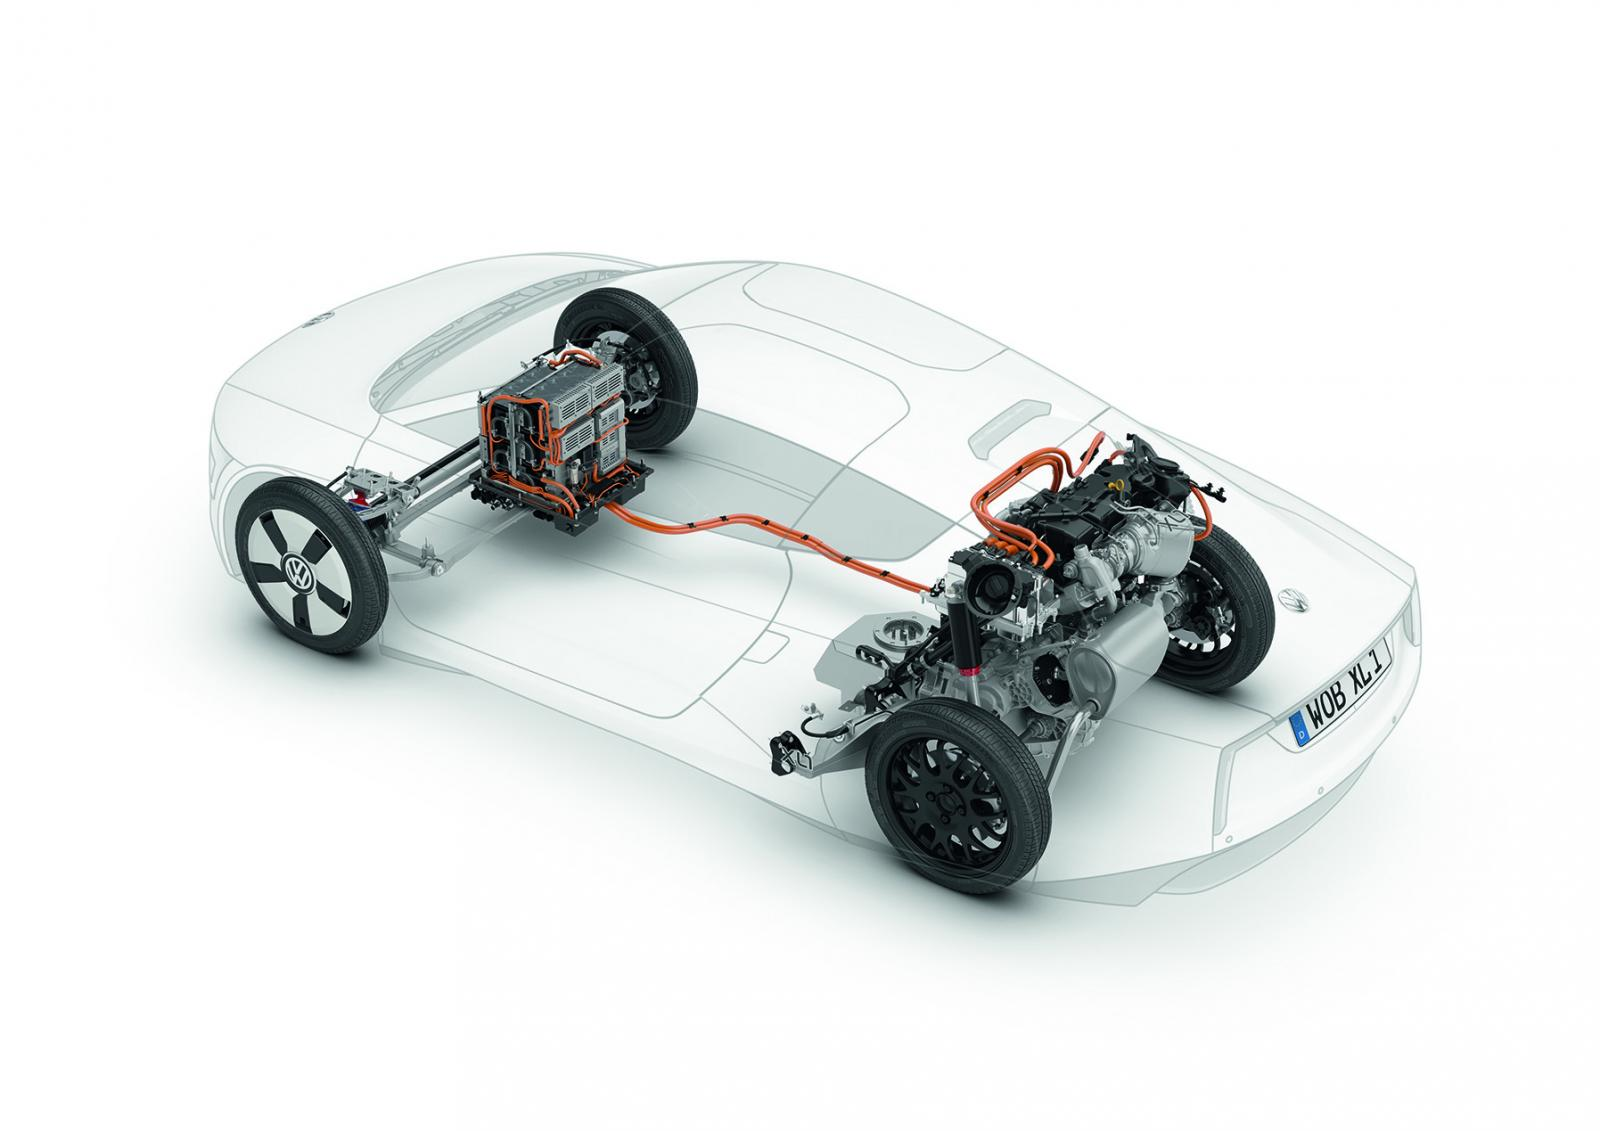 VW XL1 under the skin